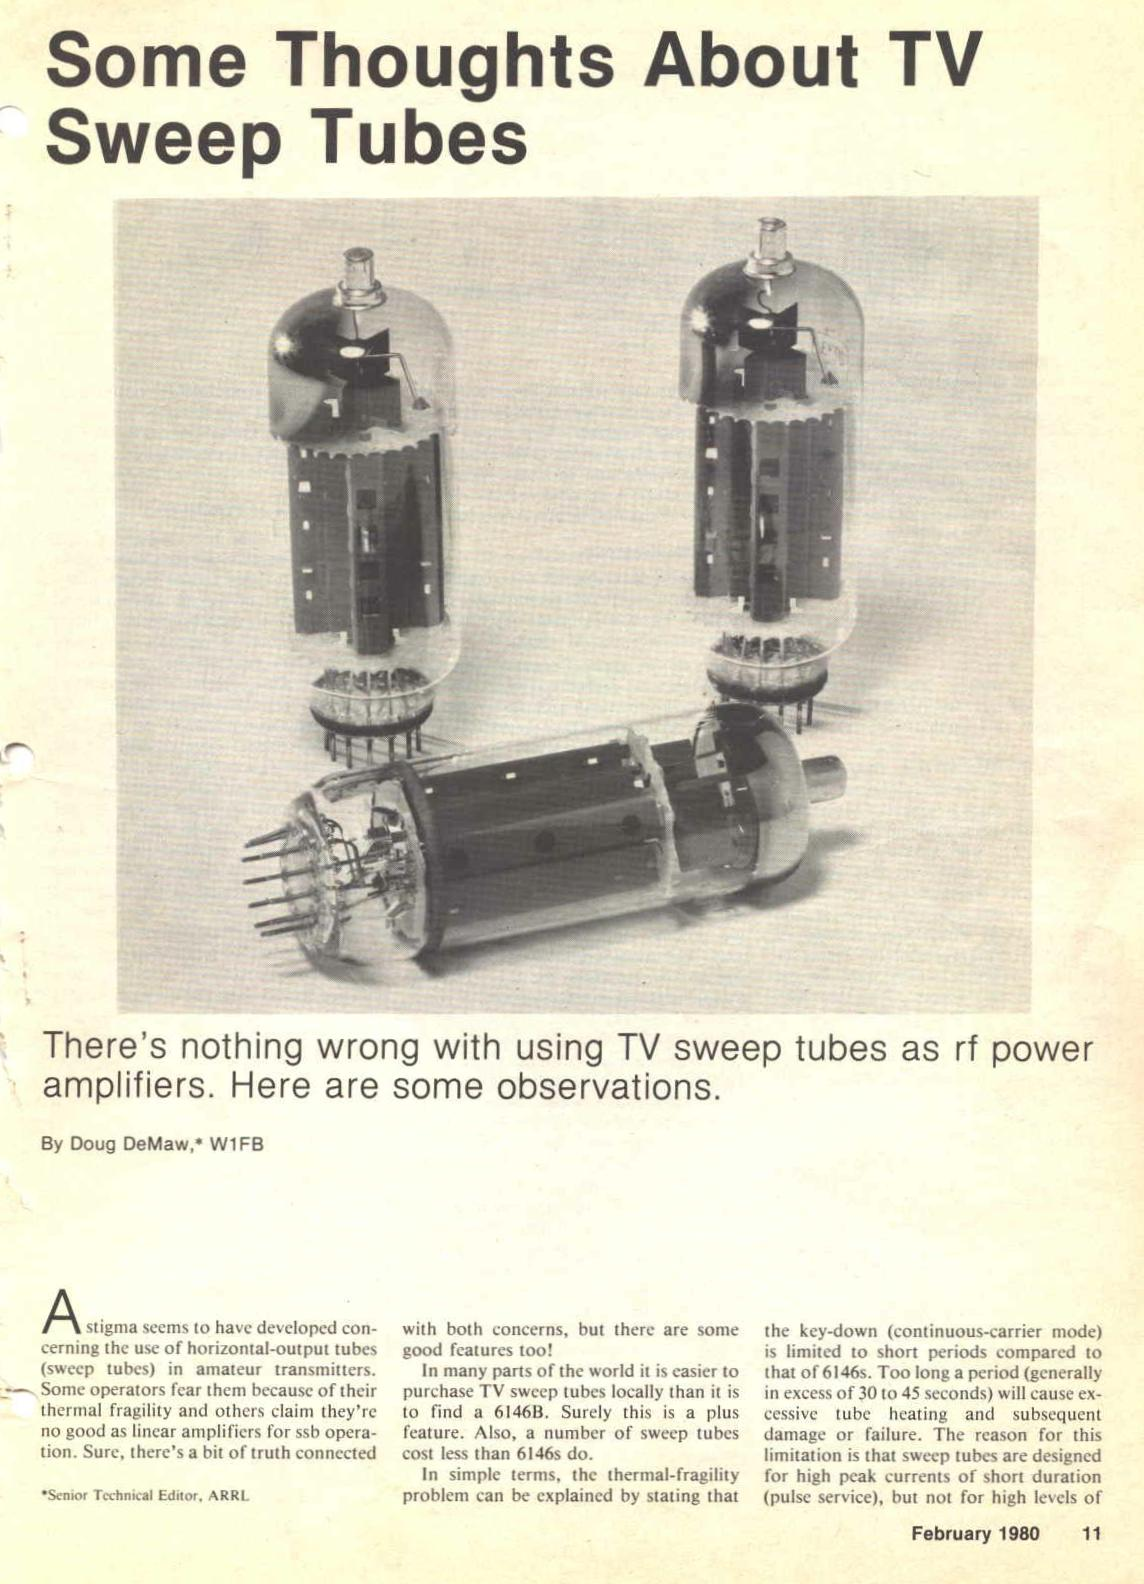 Some Thoughts About TV Sweep Tubes, part 1